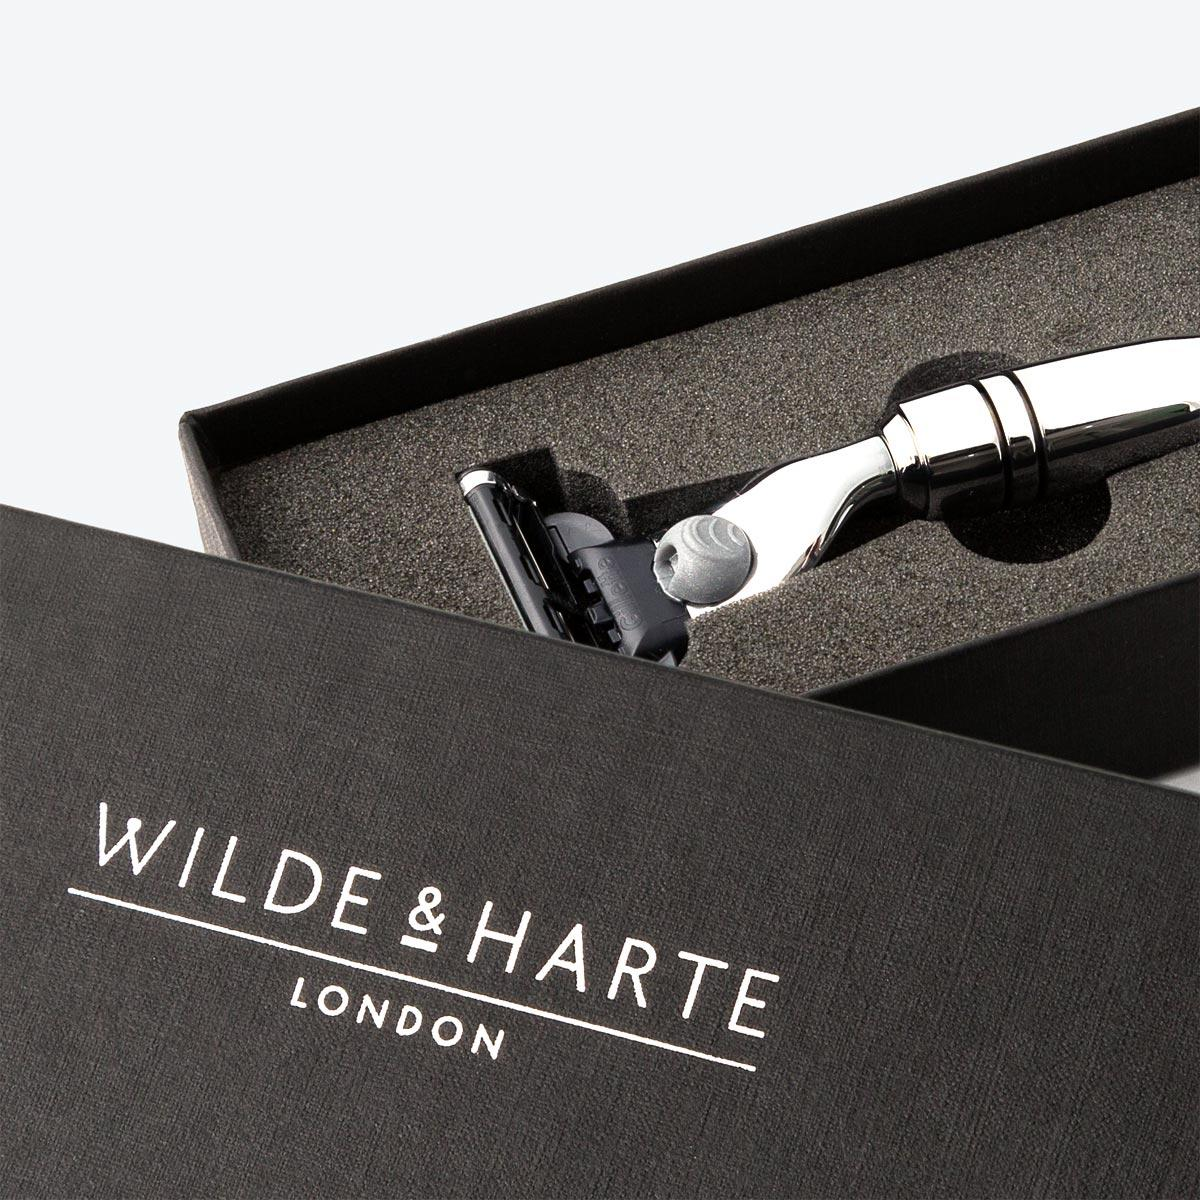 The Osterley Mach3 Razor from Wilde & Harte